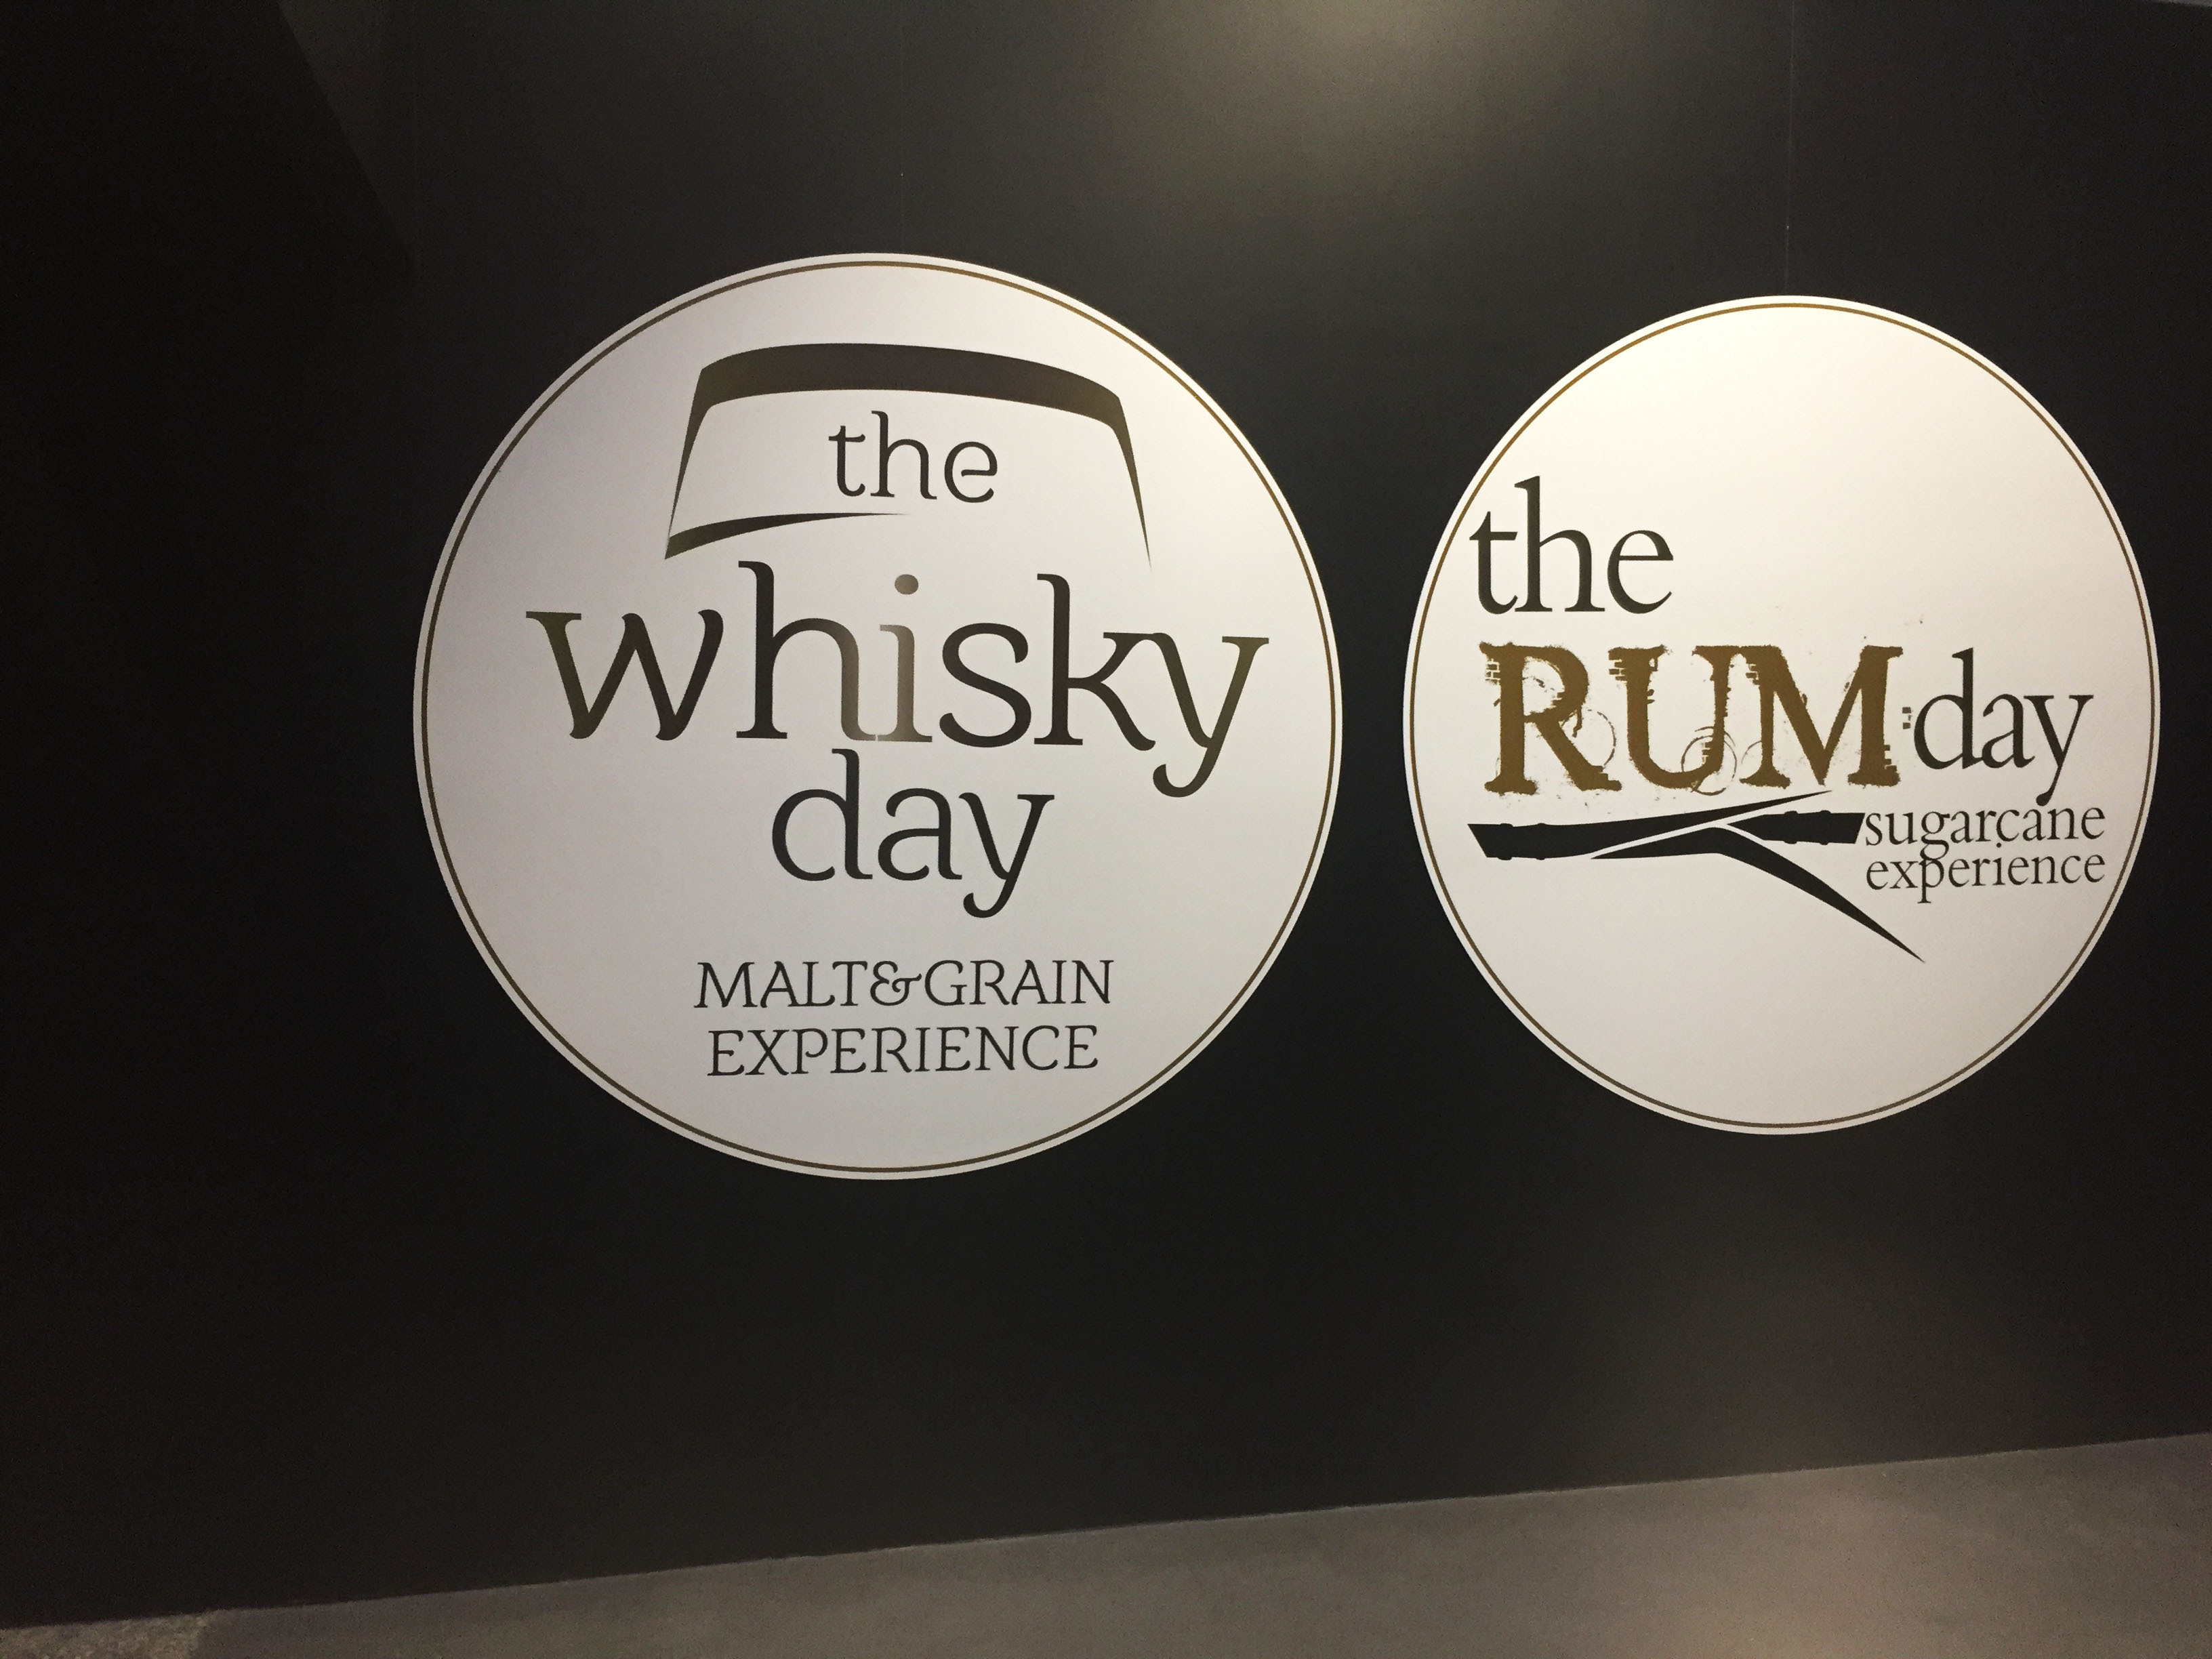 The Rum day - The Whisky day  in via Watt - 12